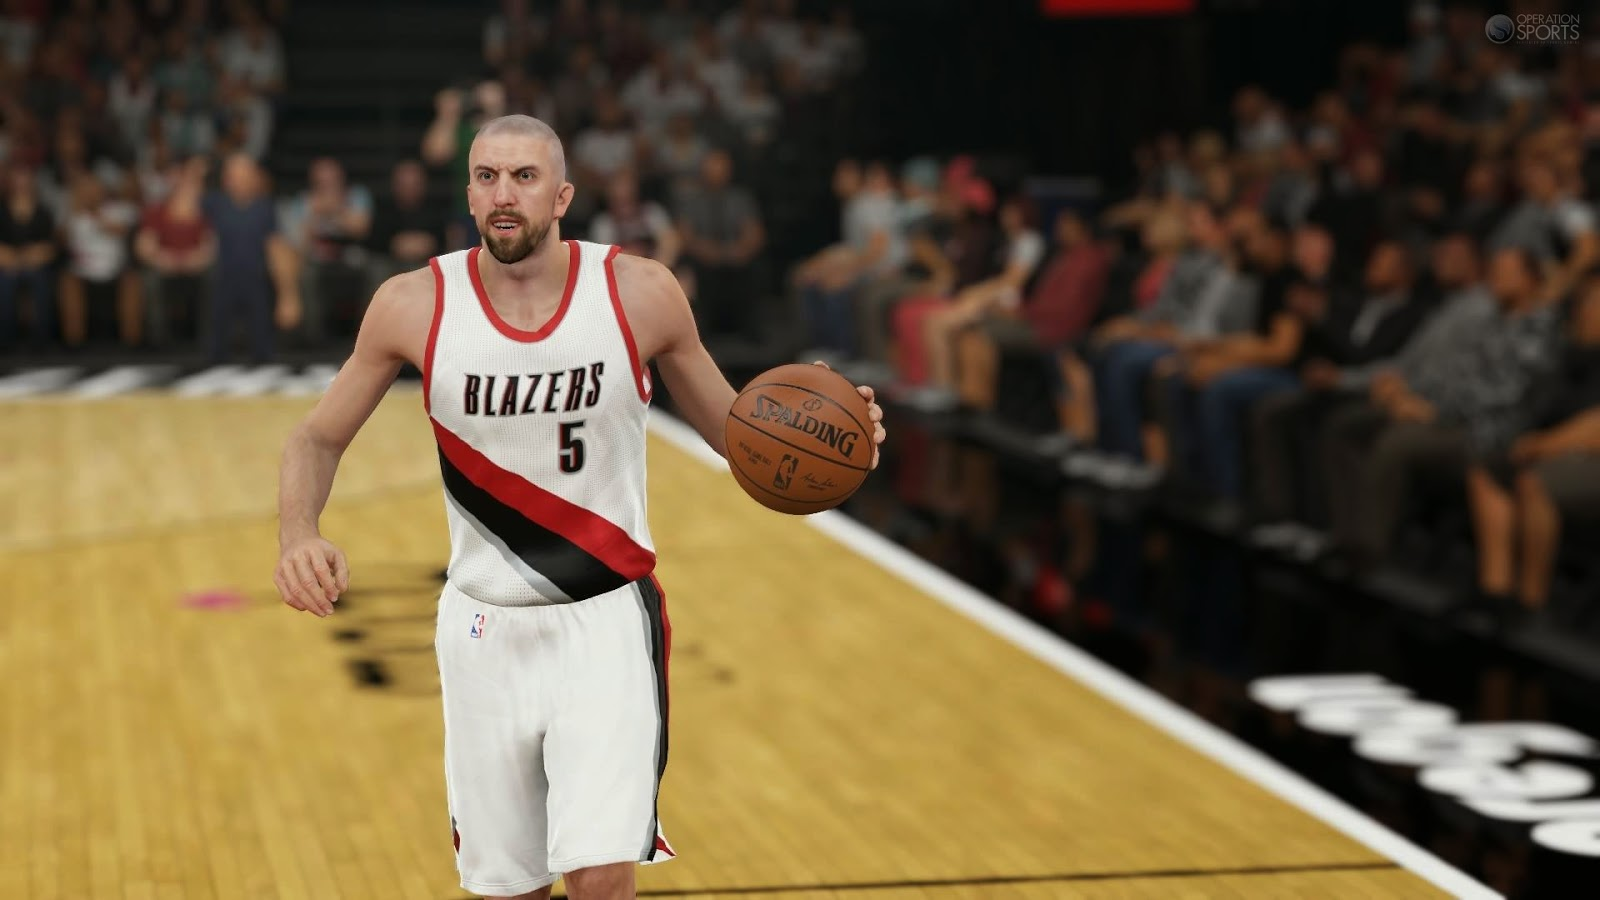 Steve Blake Changes Jersey Number to Honor Jerome Kersey